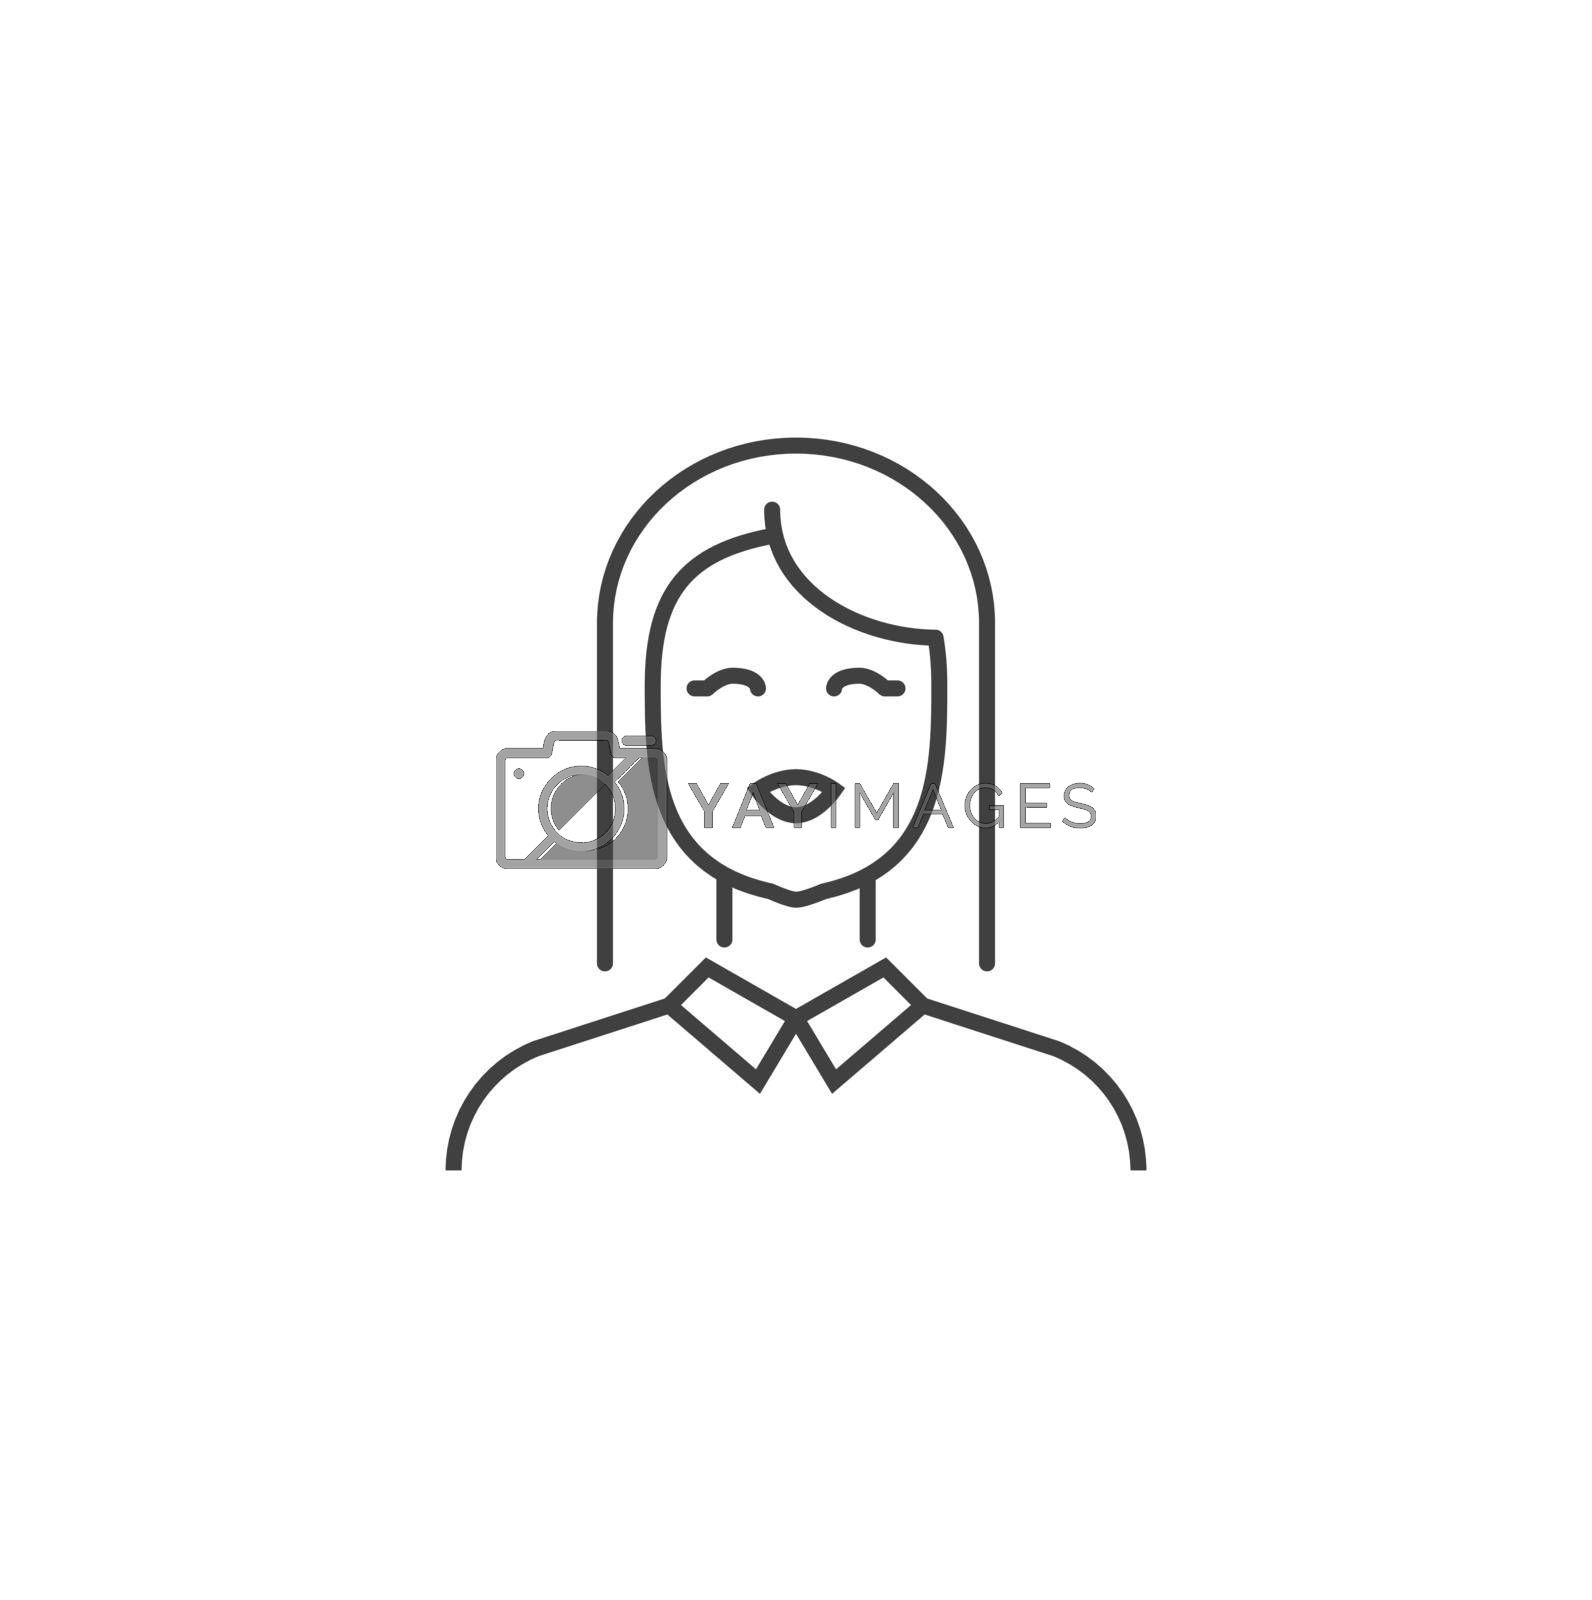 Employee Thin Line Vector Icon. Flat Icon Isolated on the Black Background. Editable Stroke EPS file. Vector illustration.